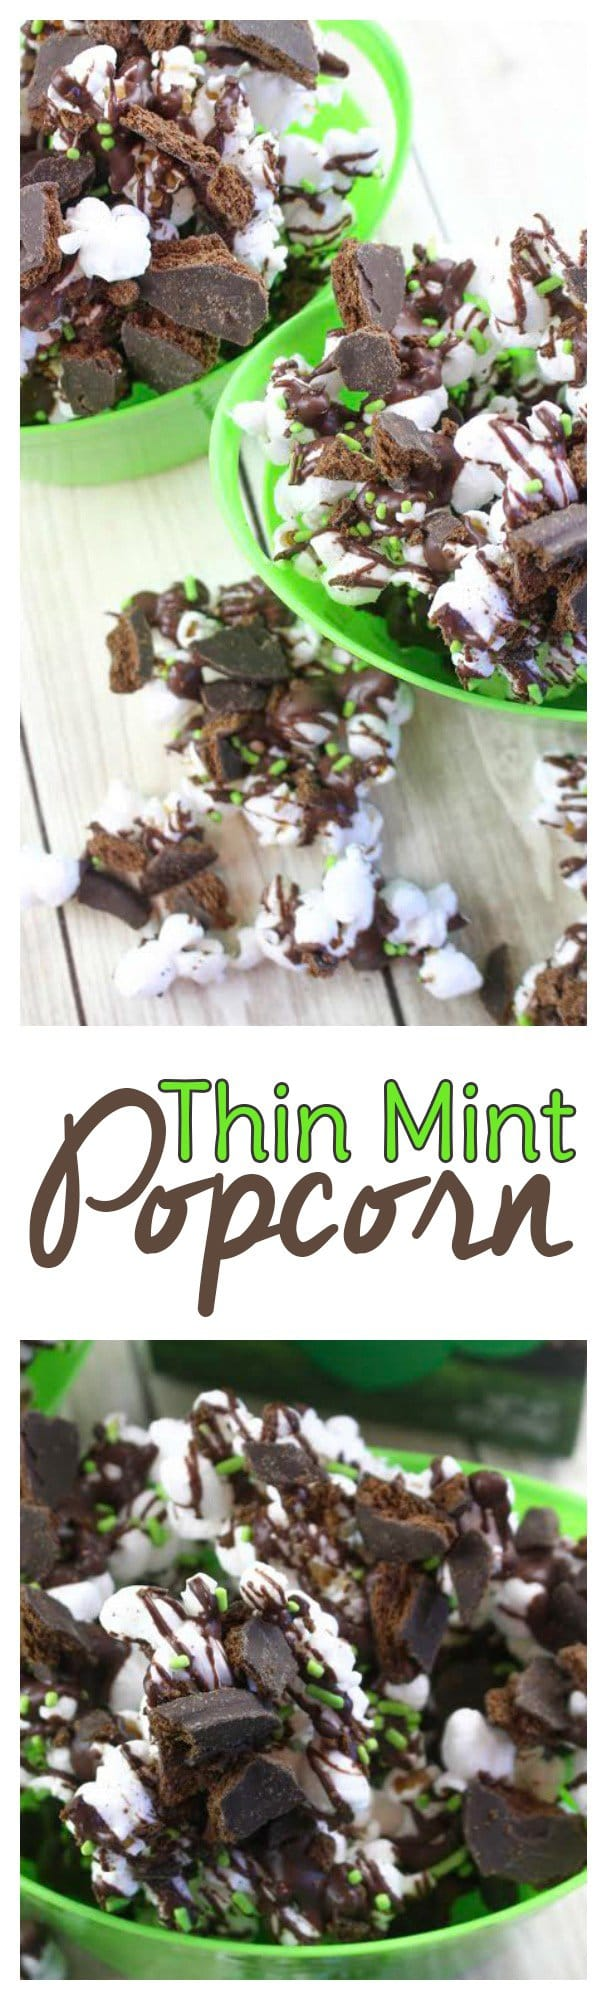 Looking for a leftover Girl Scout cookie recipe? If you're in need of recipes using thin mint cookies, you'll love this Thin Mint Popcorn Recipe!